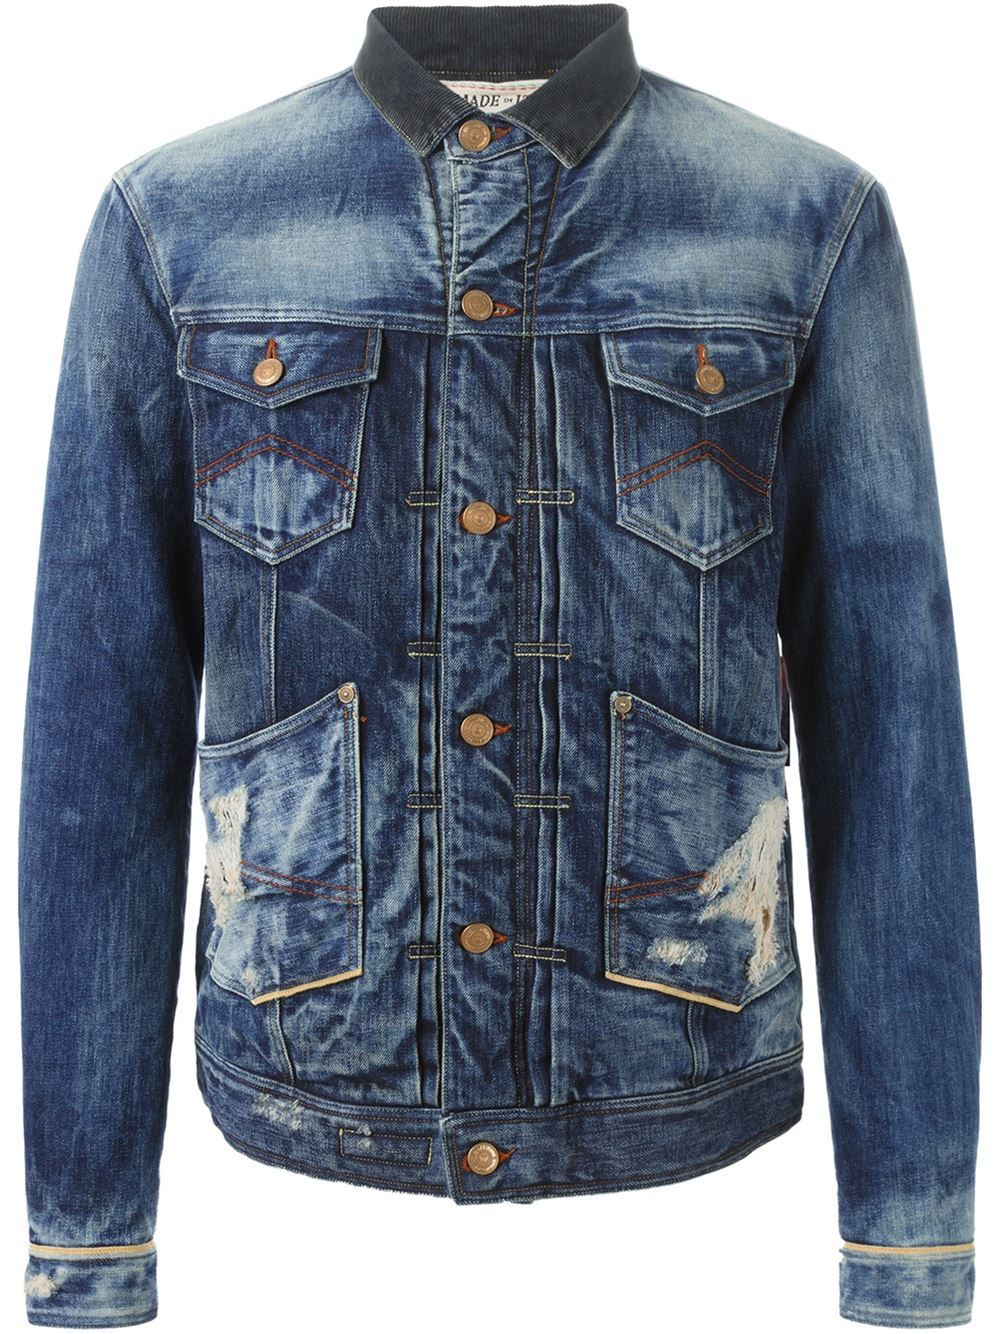 28357d905fb5 Armani Jeans stone washed denim jacket